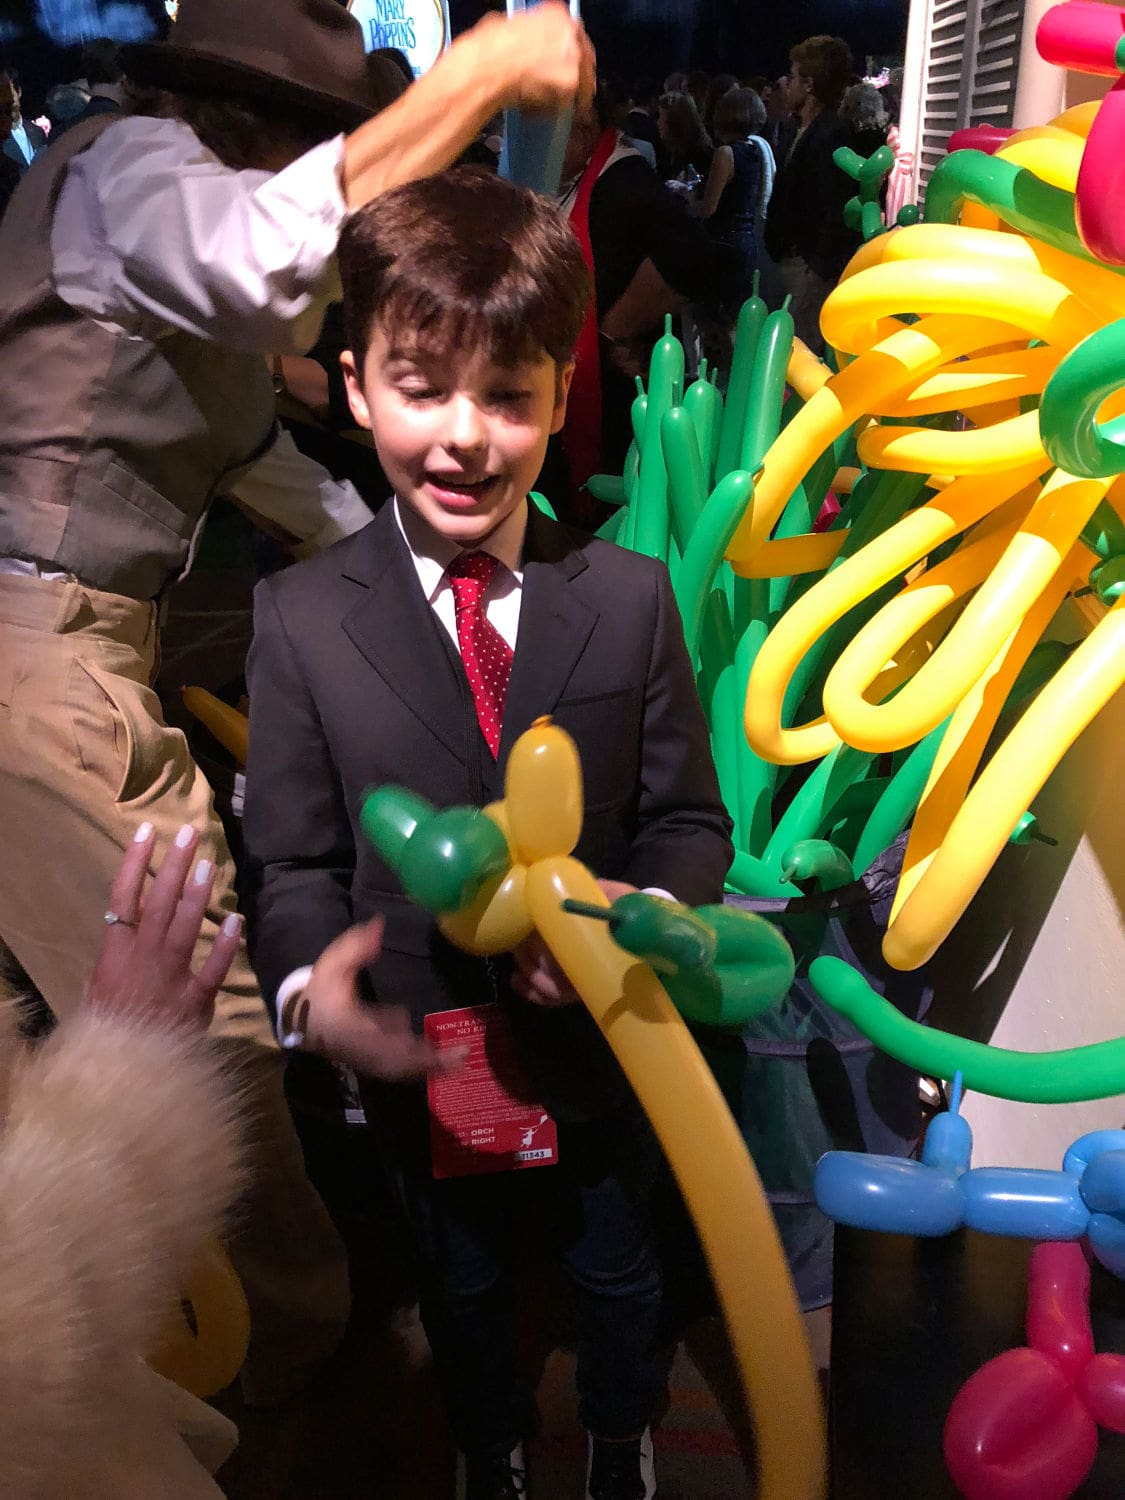 Young Sheldon and the balloons